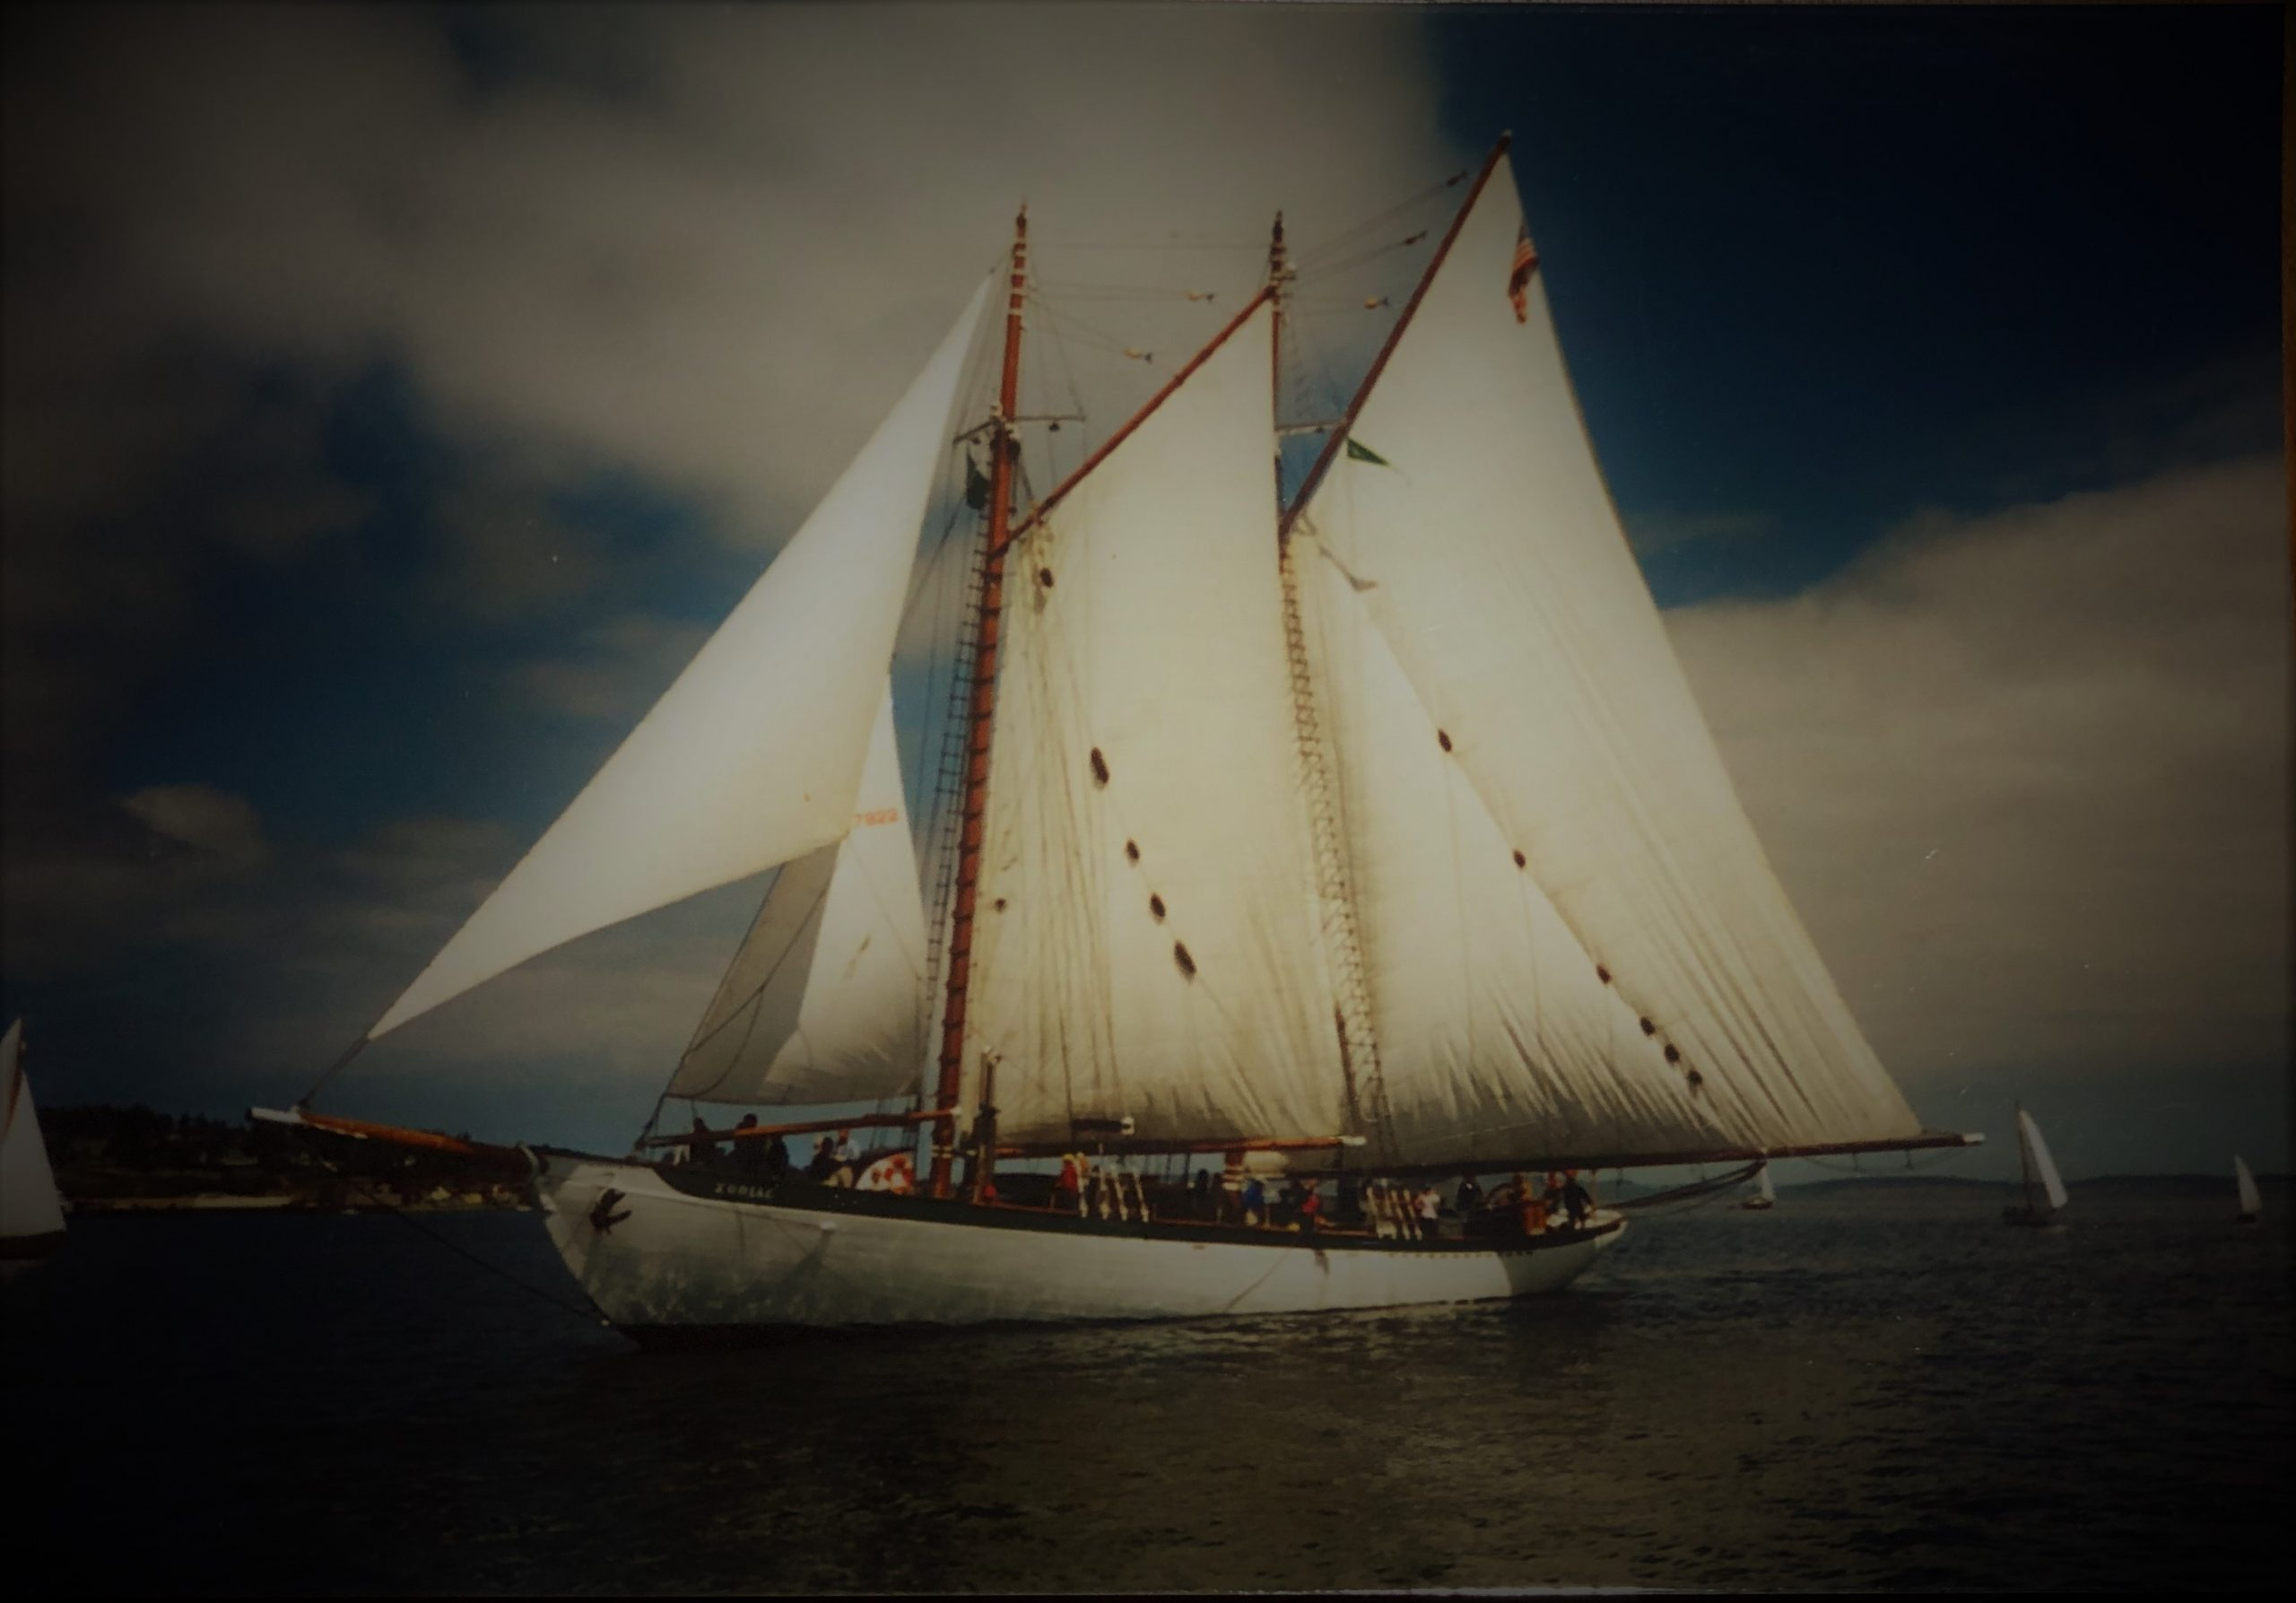 historic-sailing-vessel-2-1-scaled.jpg